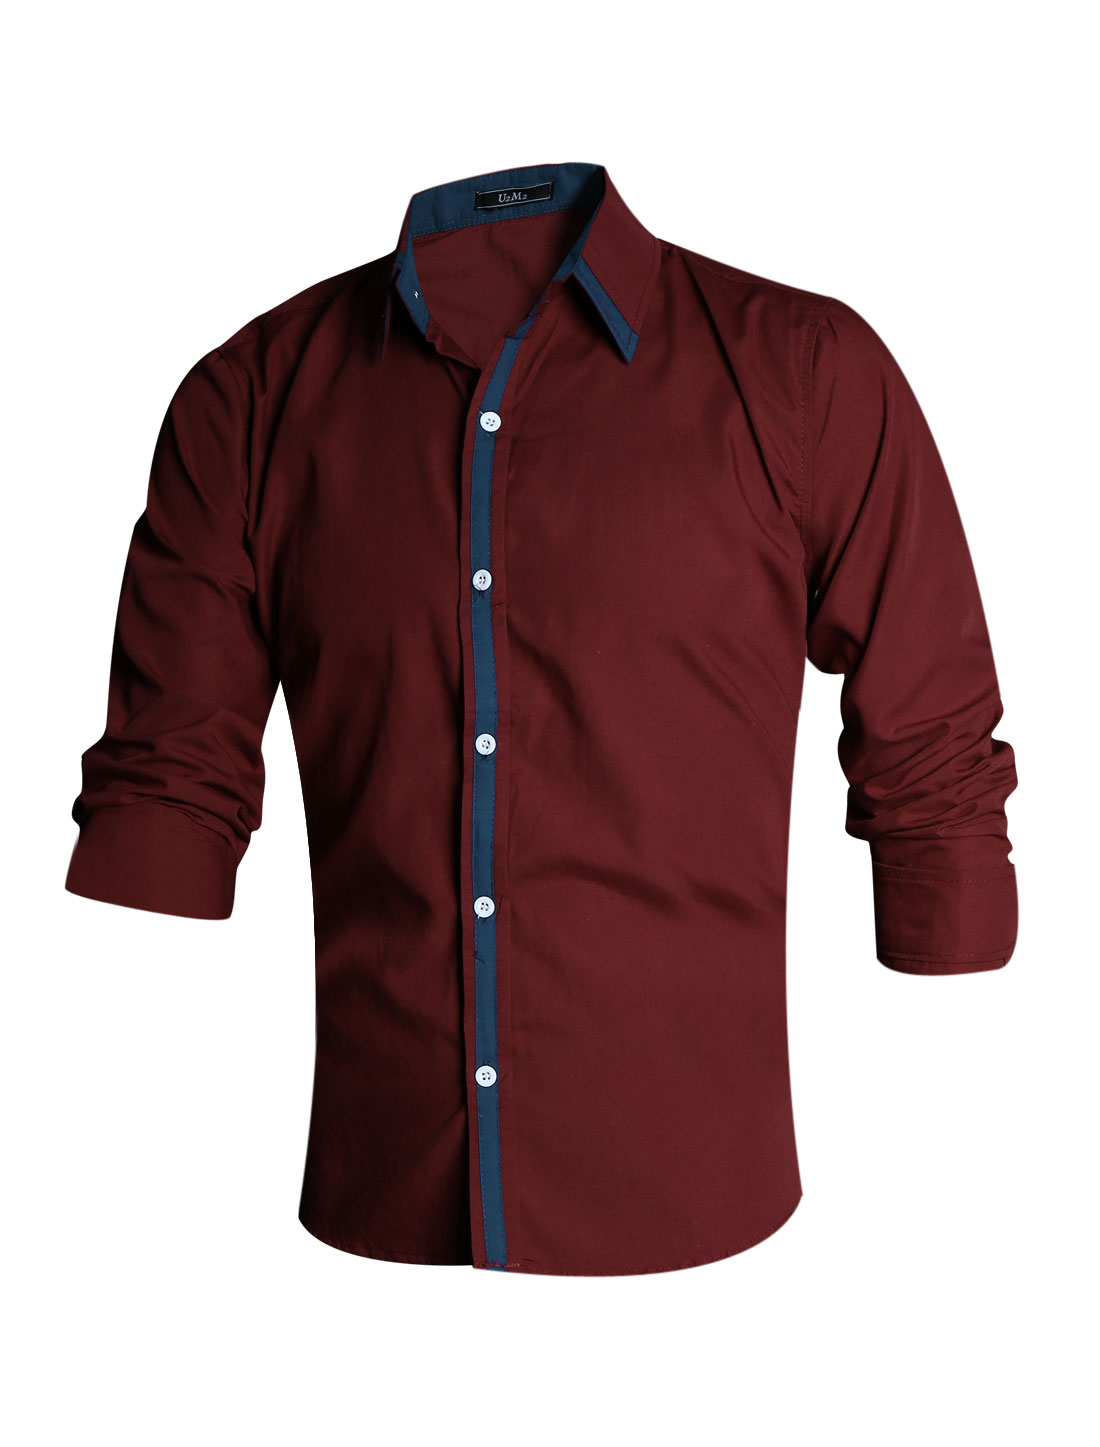 Men Burgundy Single Breasted Point Collar Contrast Color Detail Shirt M